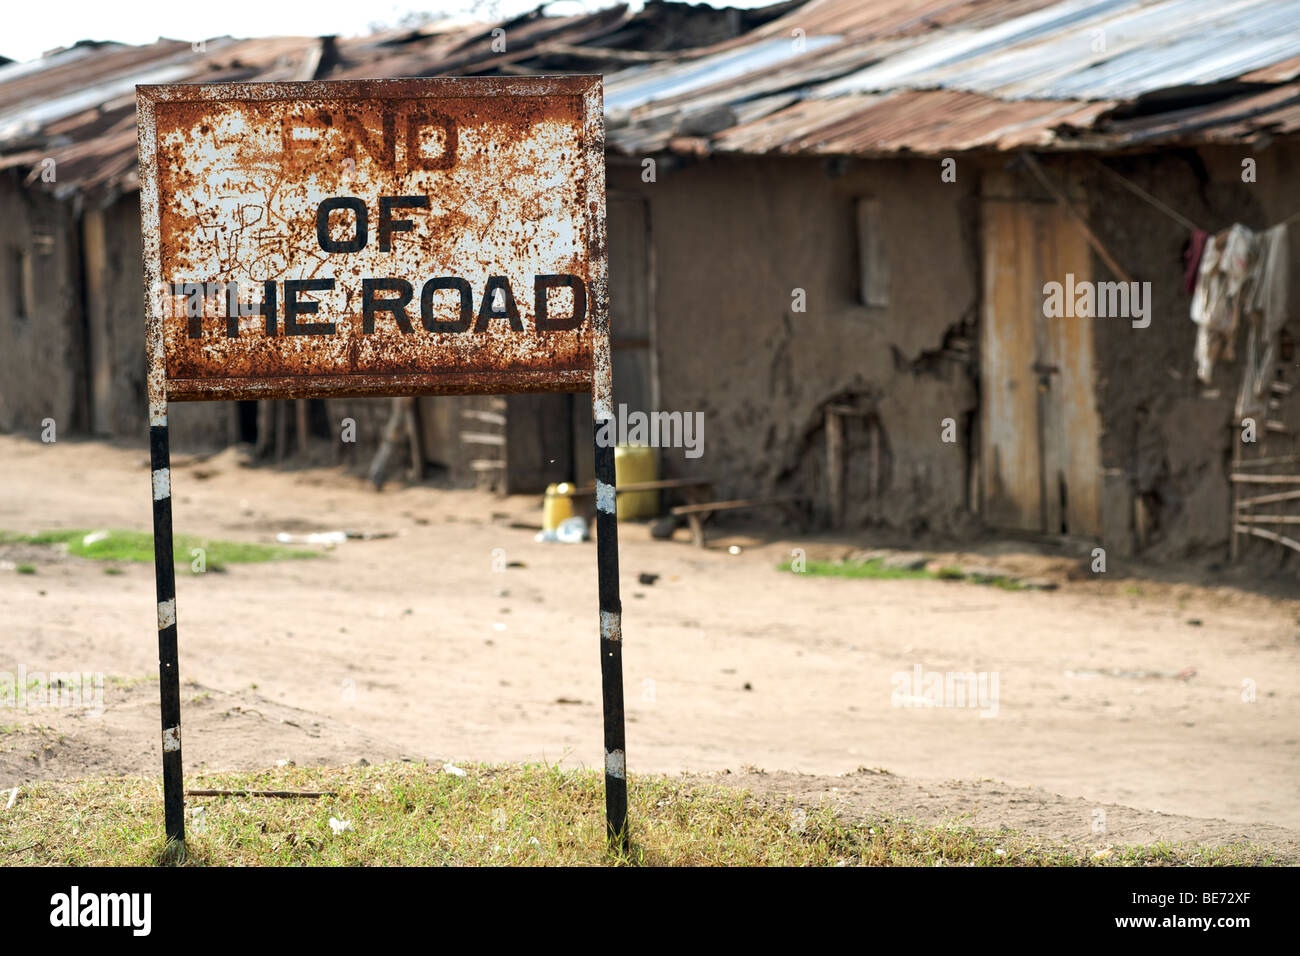 'End of the road' sign in a village in Uganda. - Stock Image